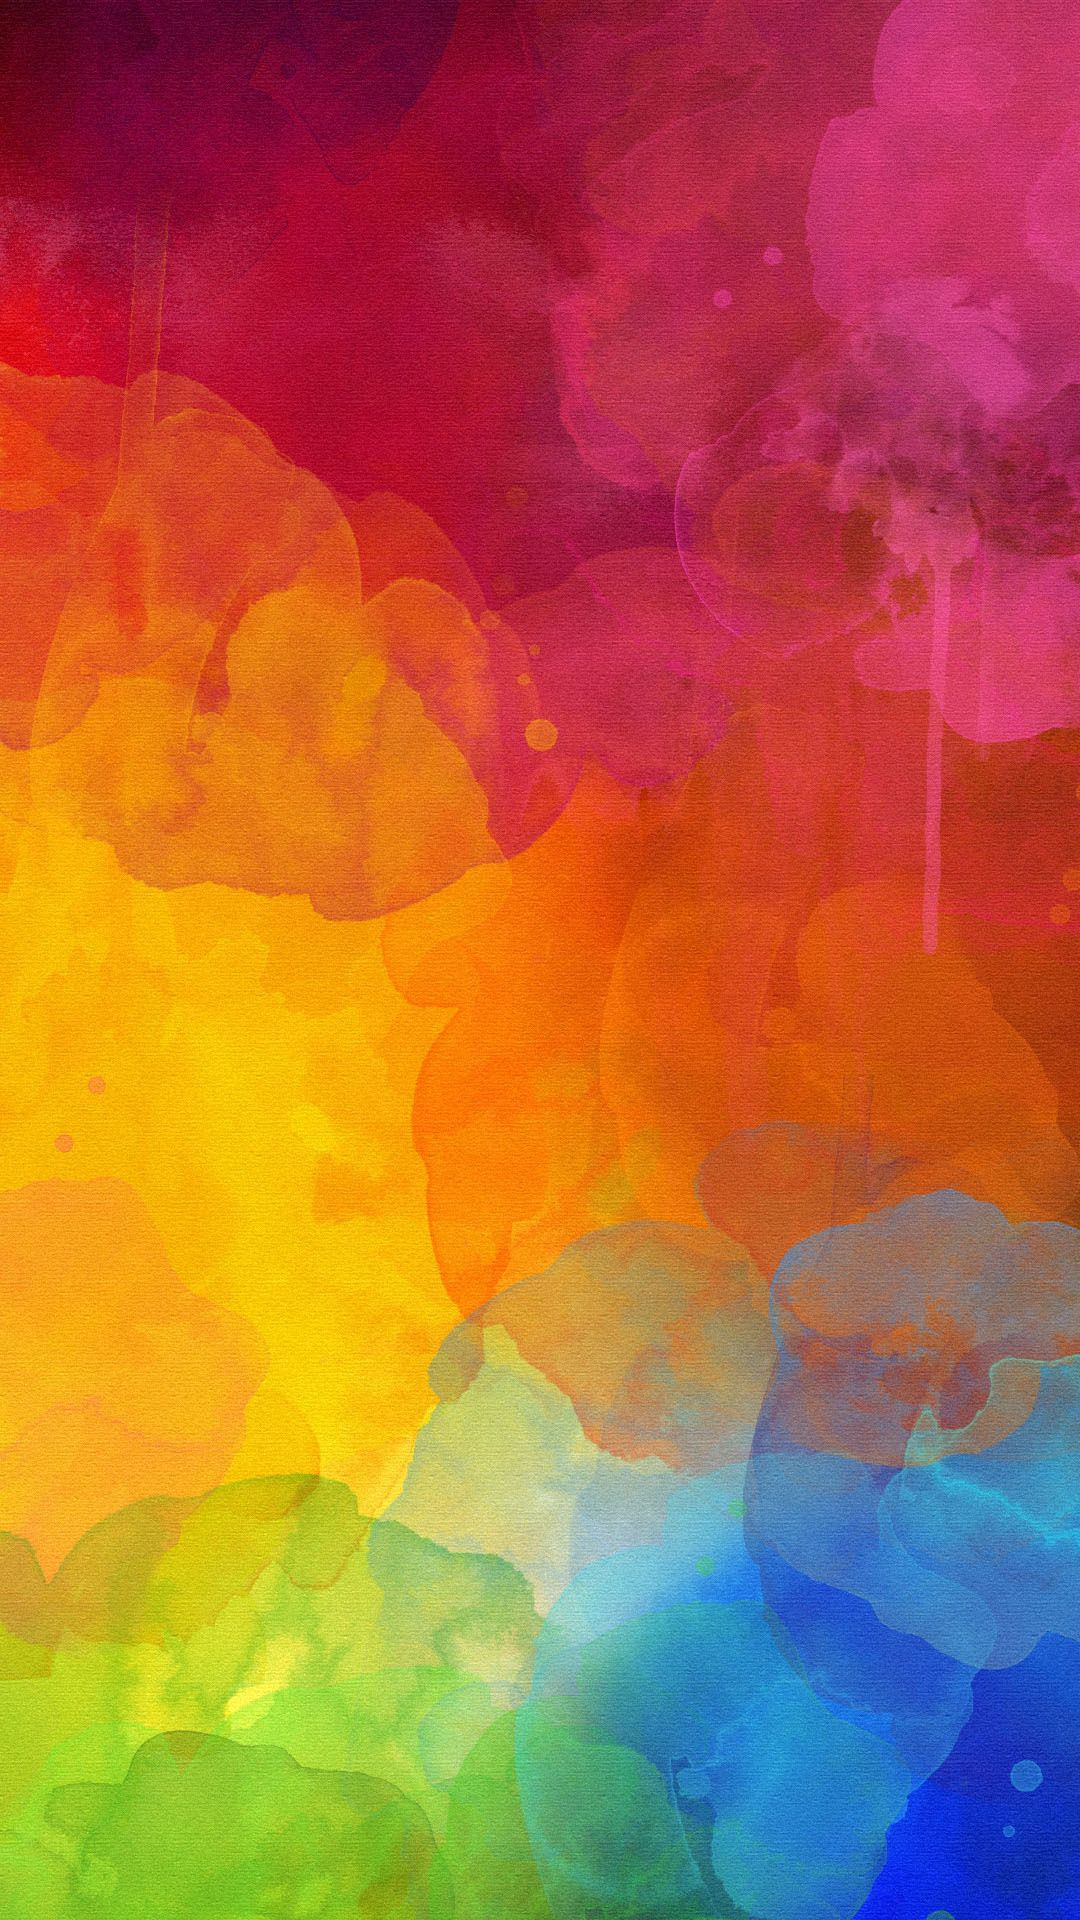 Colourful Watercolour Mark Color Of Rainbow In Abstract Tap To